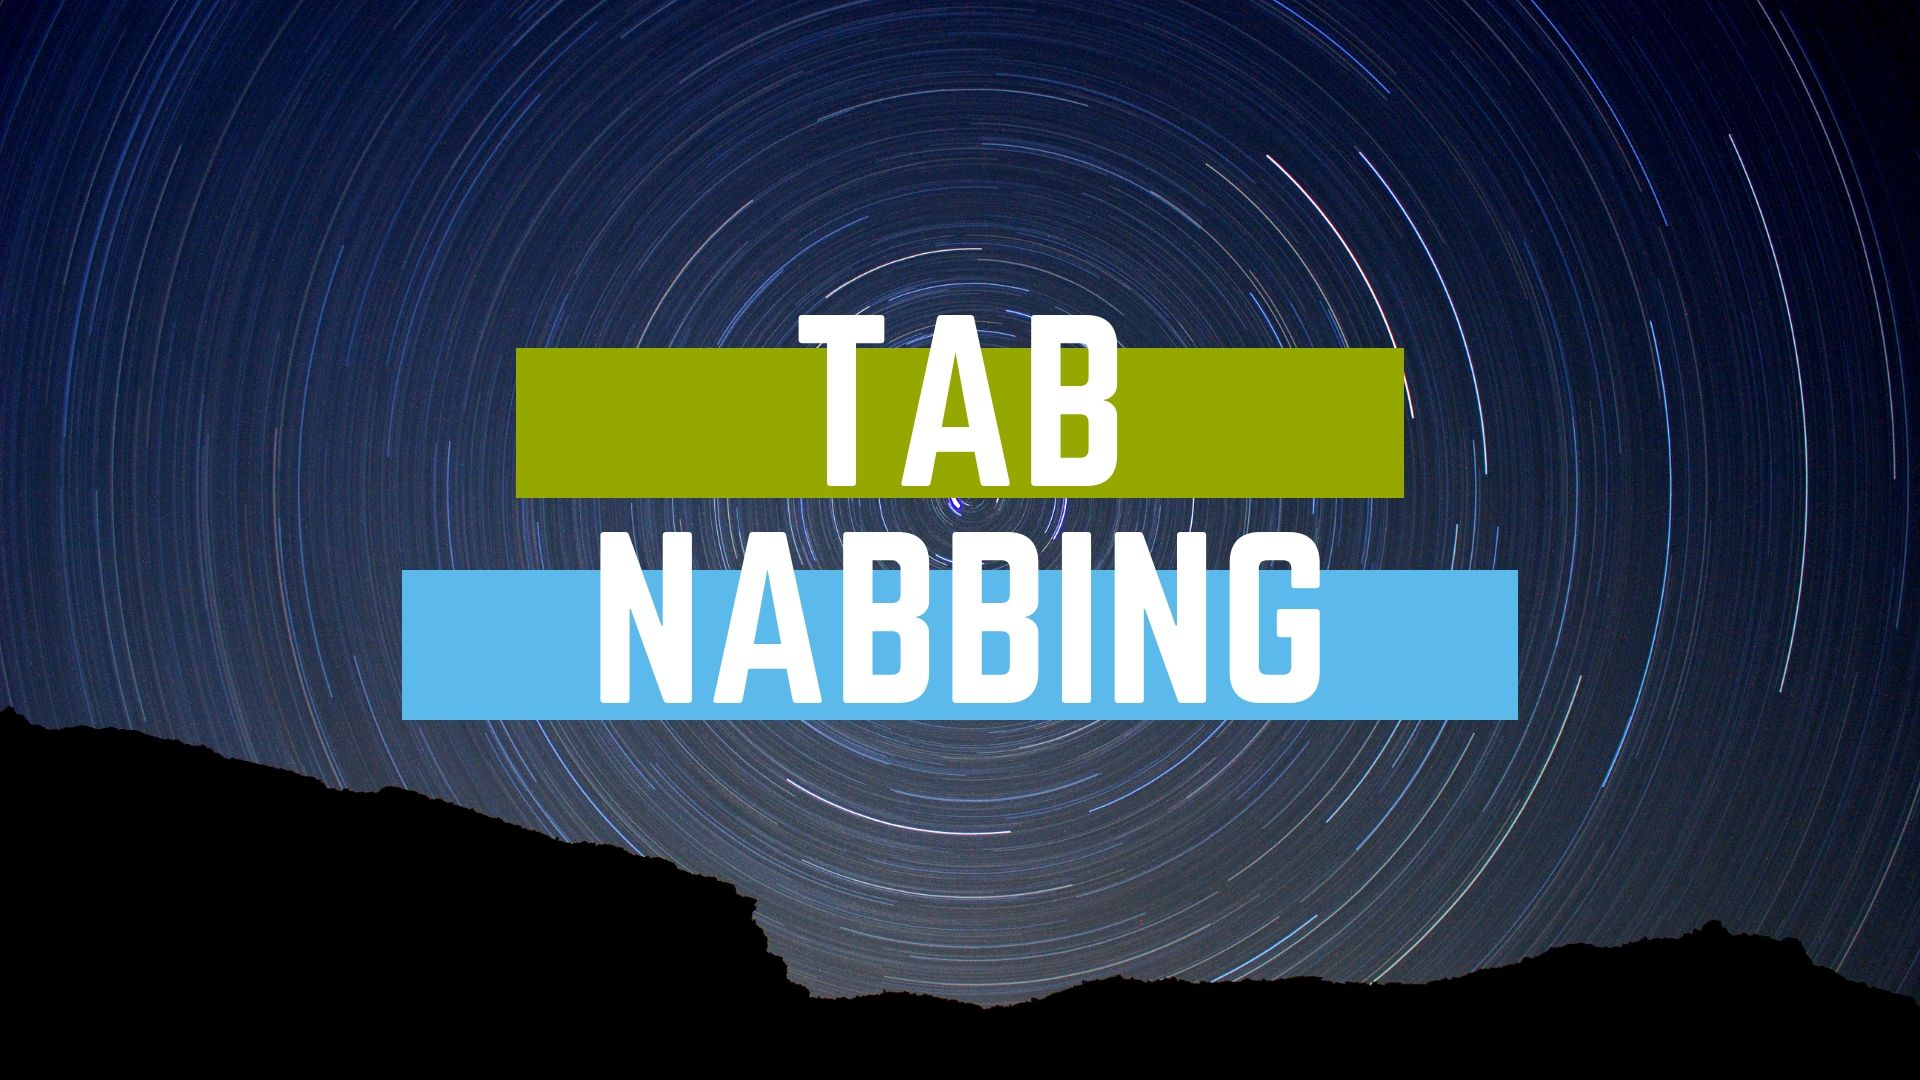 Tab nabbing hacking technique